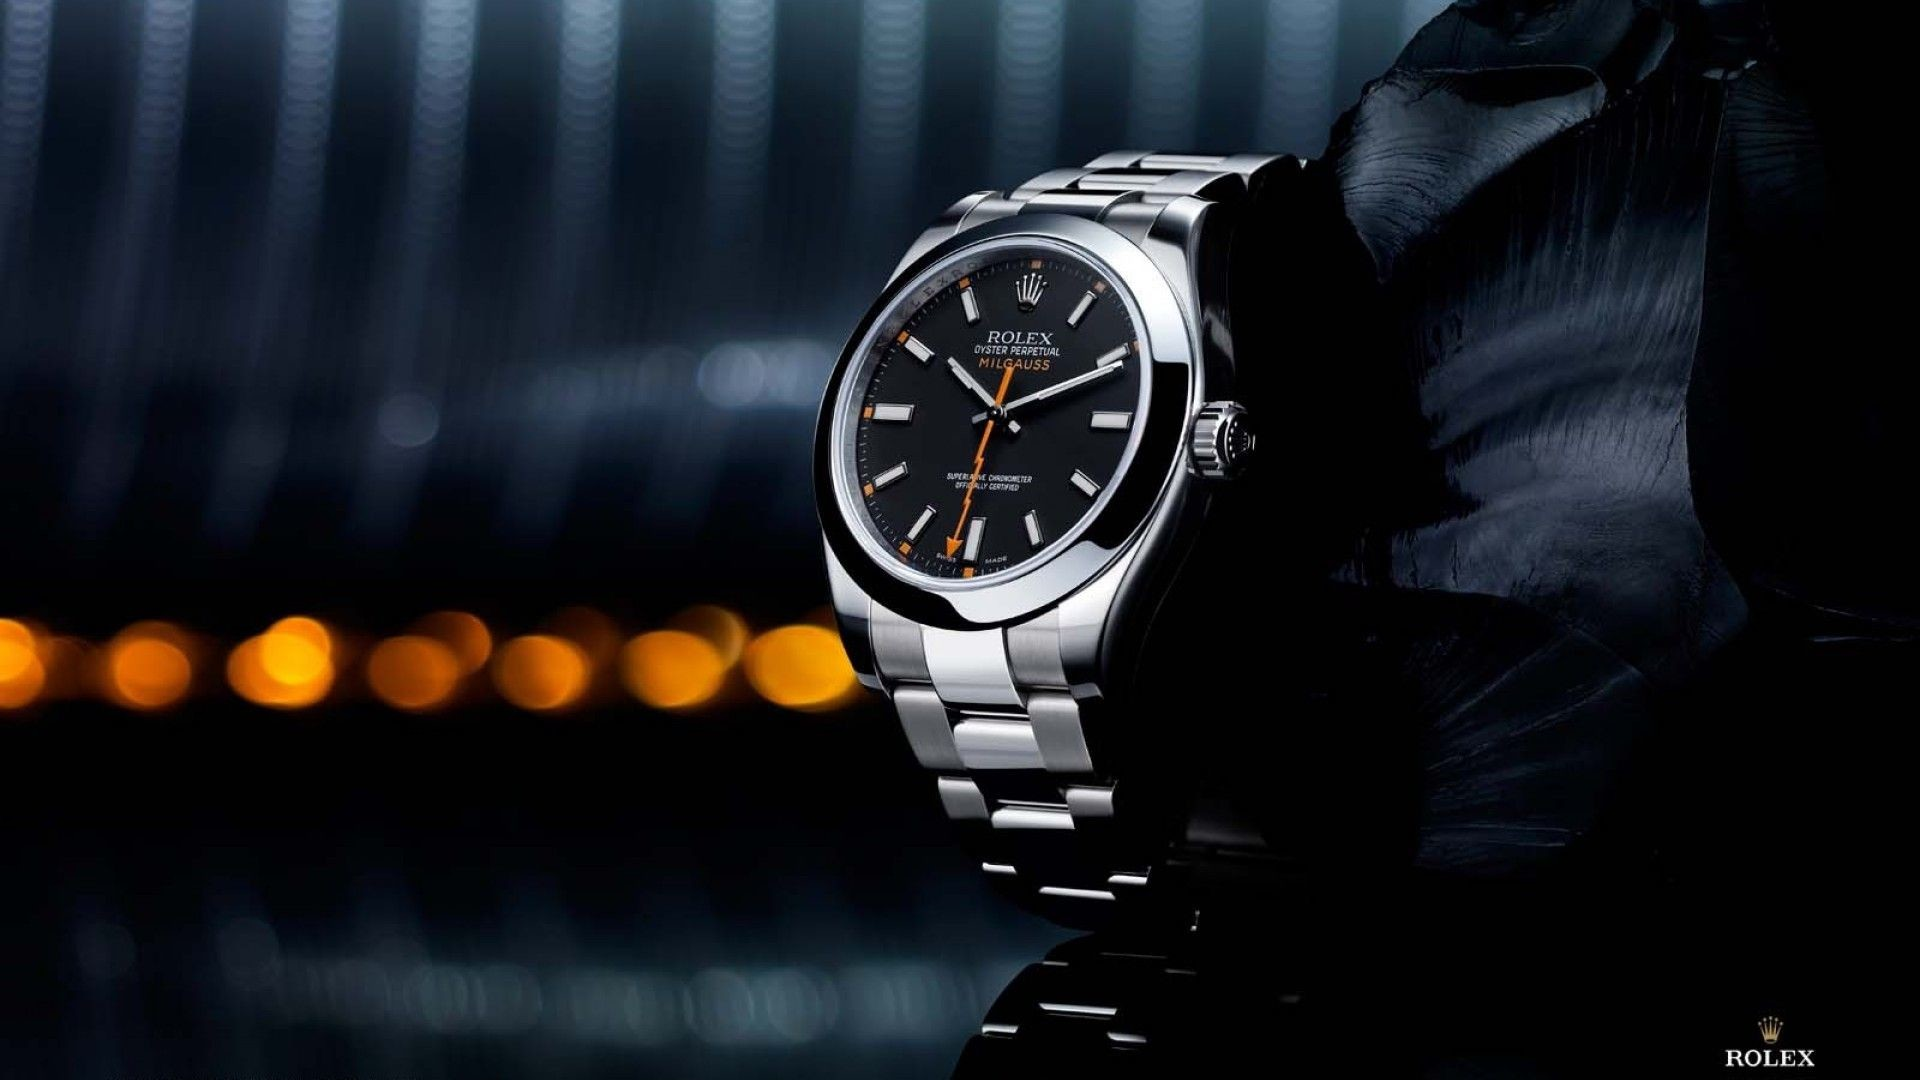 "1920x1080  Rolex Watches Wallpapers - Rolex Official Downloads"">"